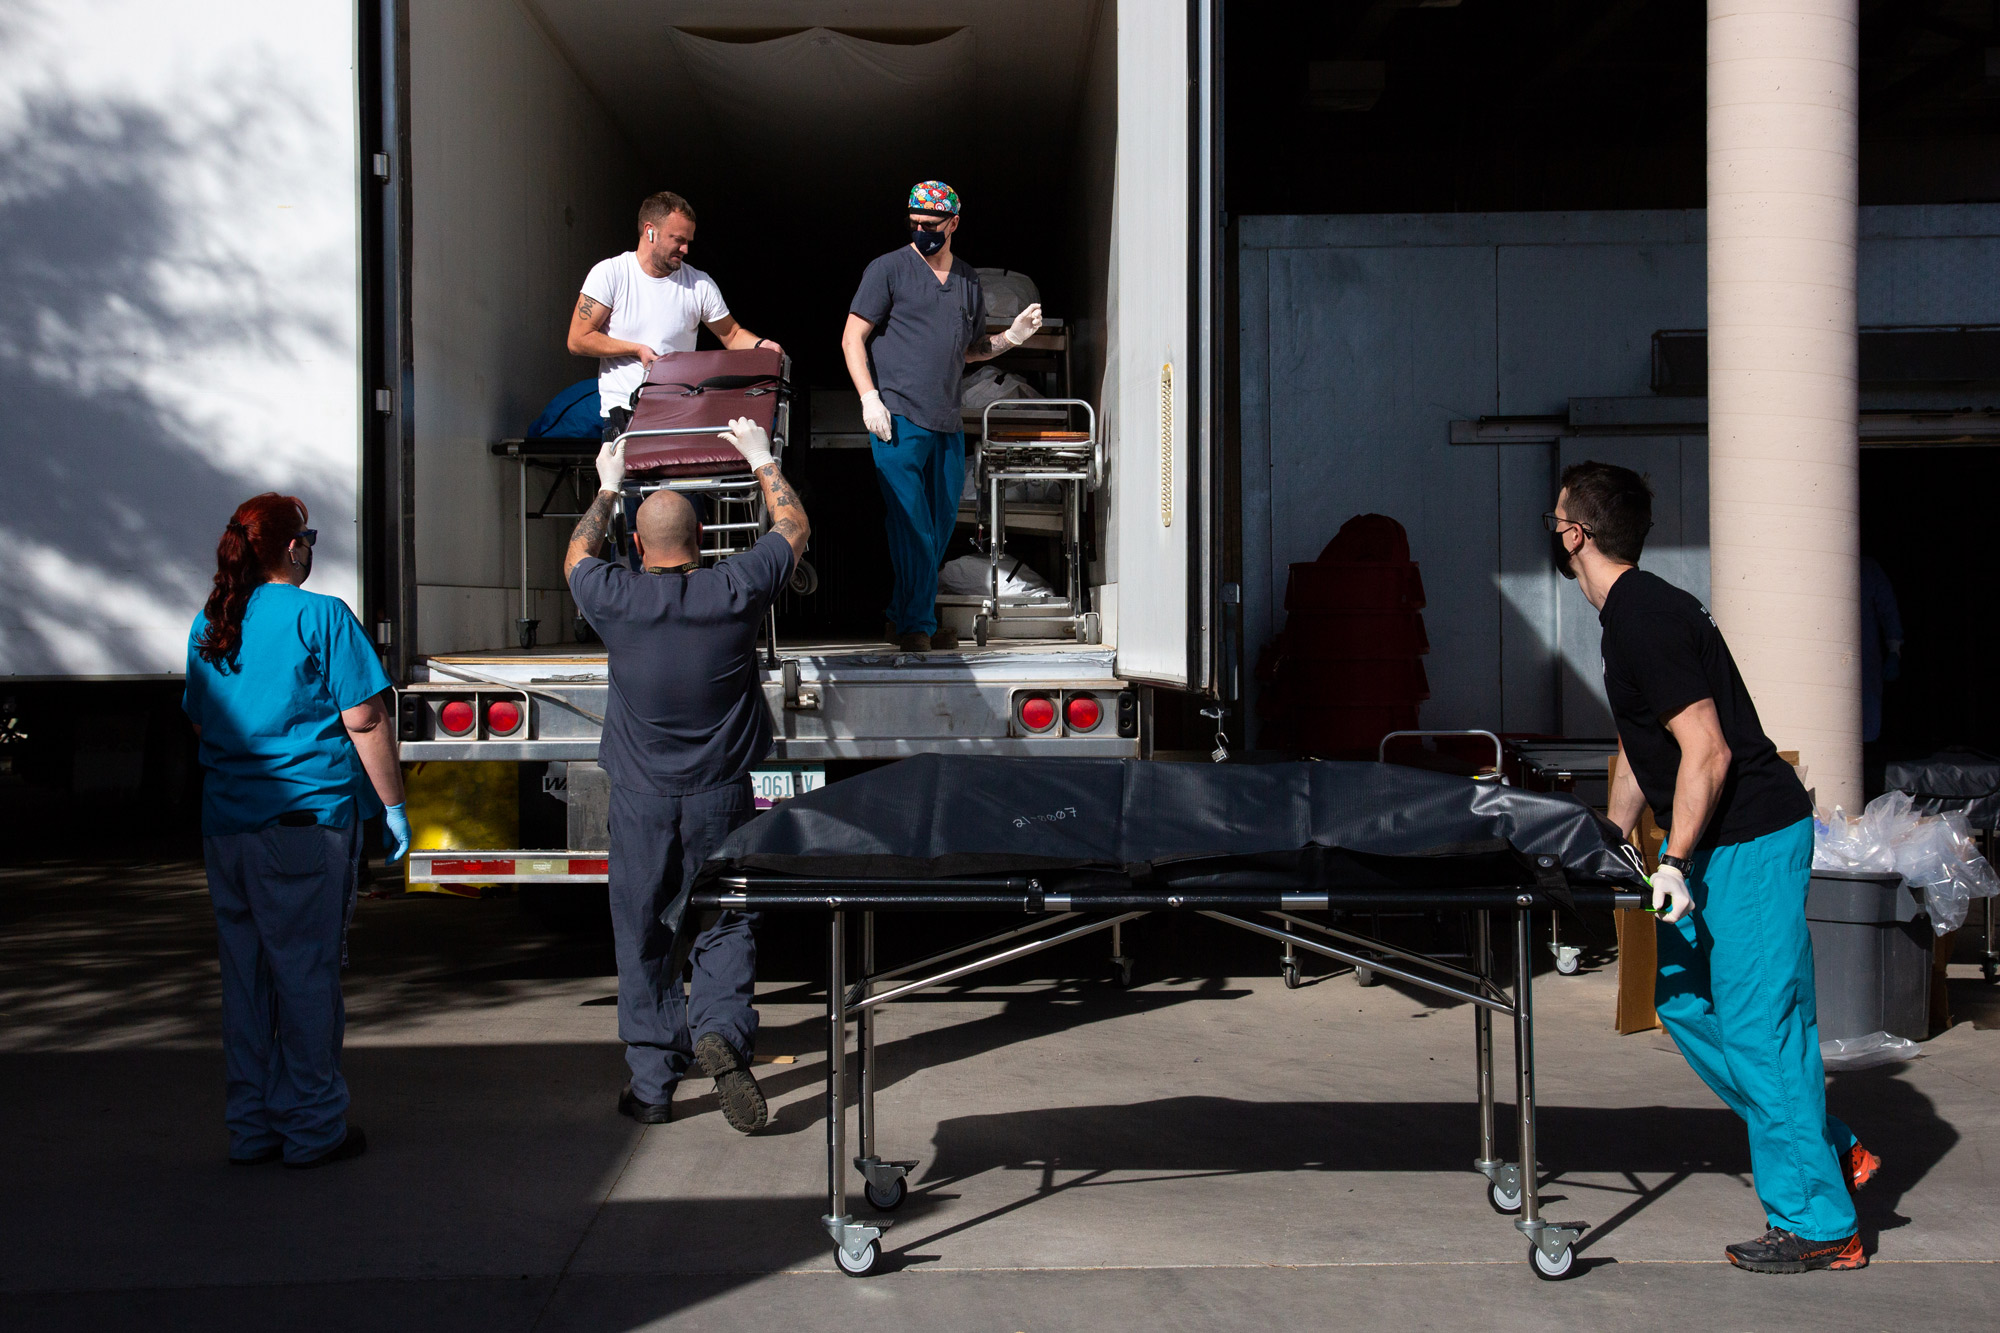 Employees move bodies into refrigerated semi-trucks at the Pima County Office of the Medical Examiner on January 14 in Tucson, Arizona.